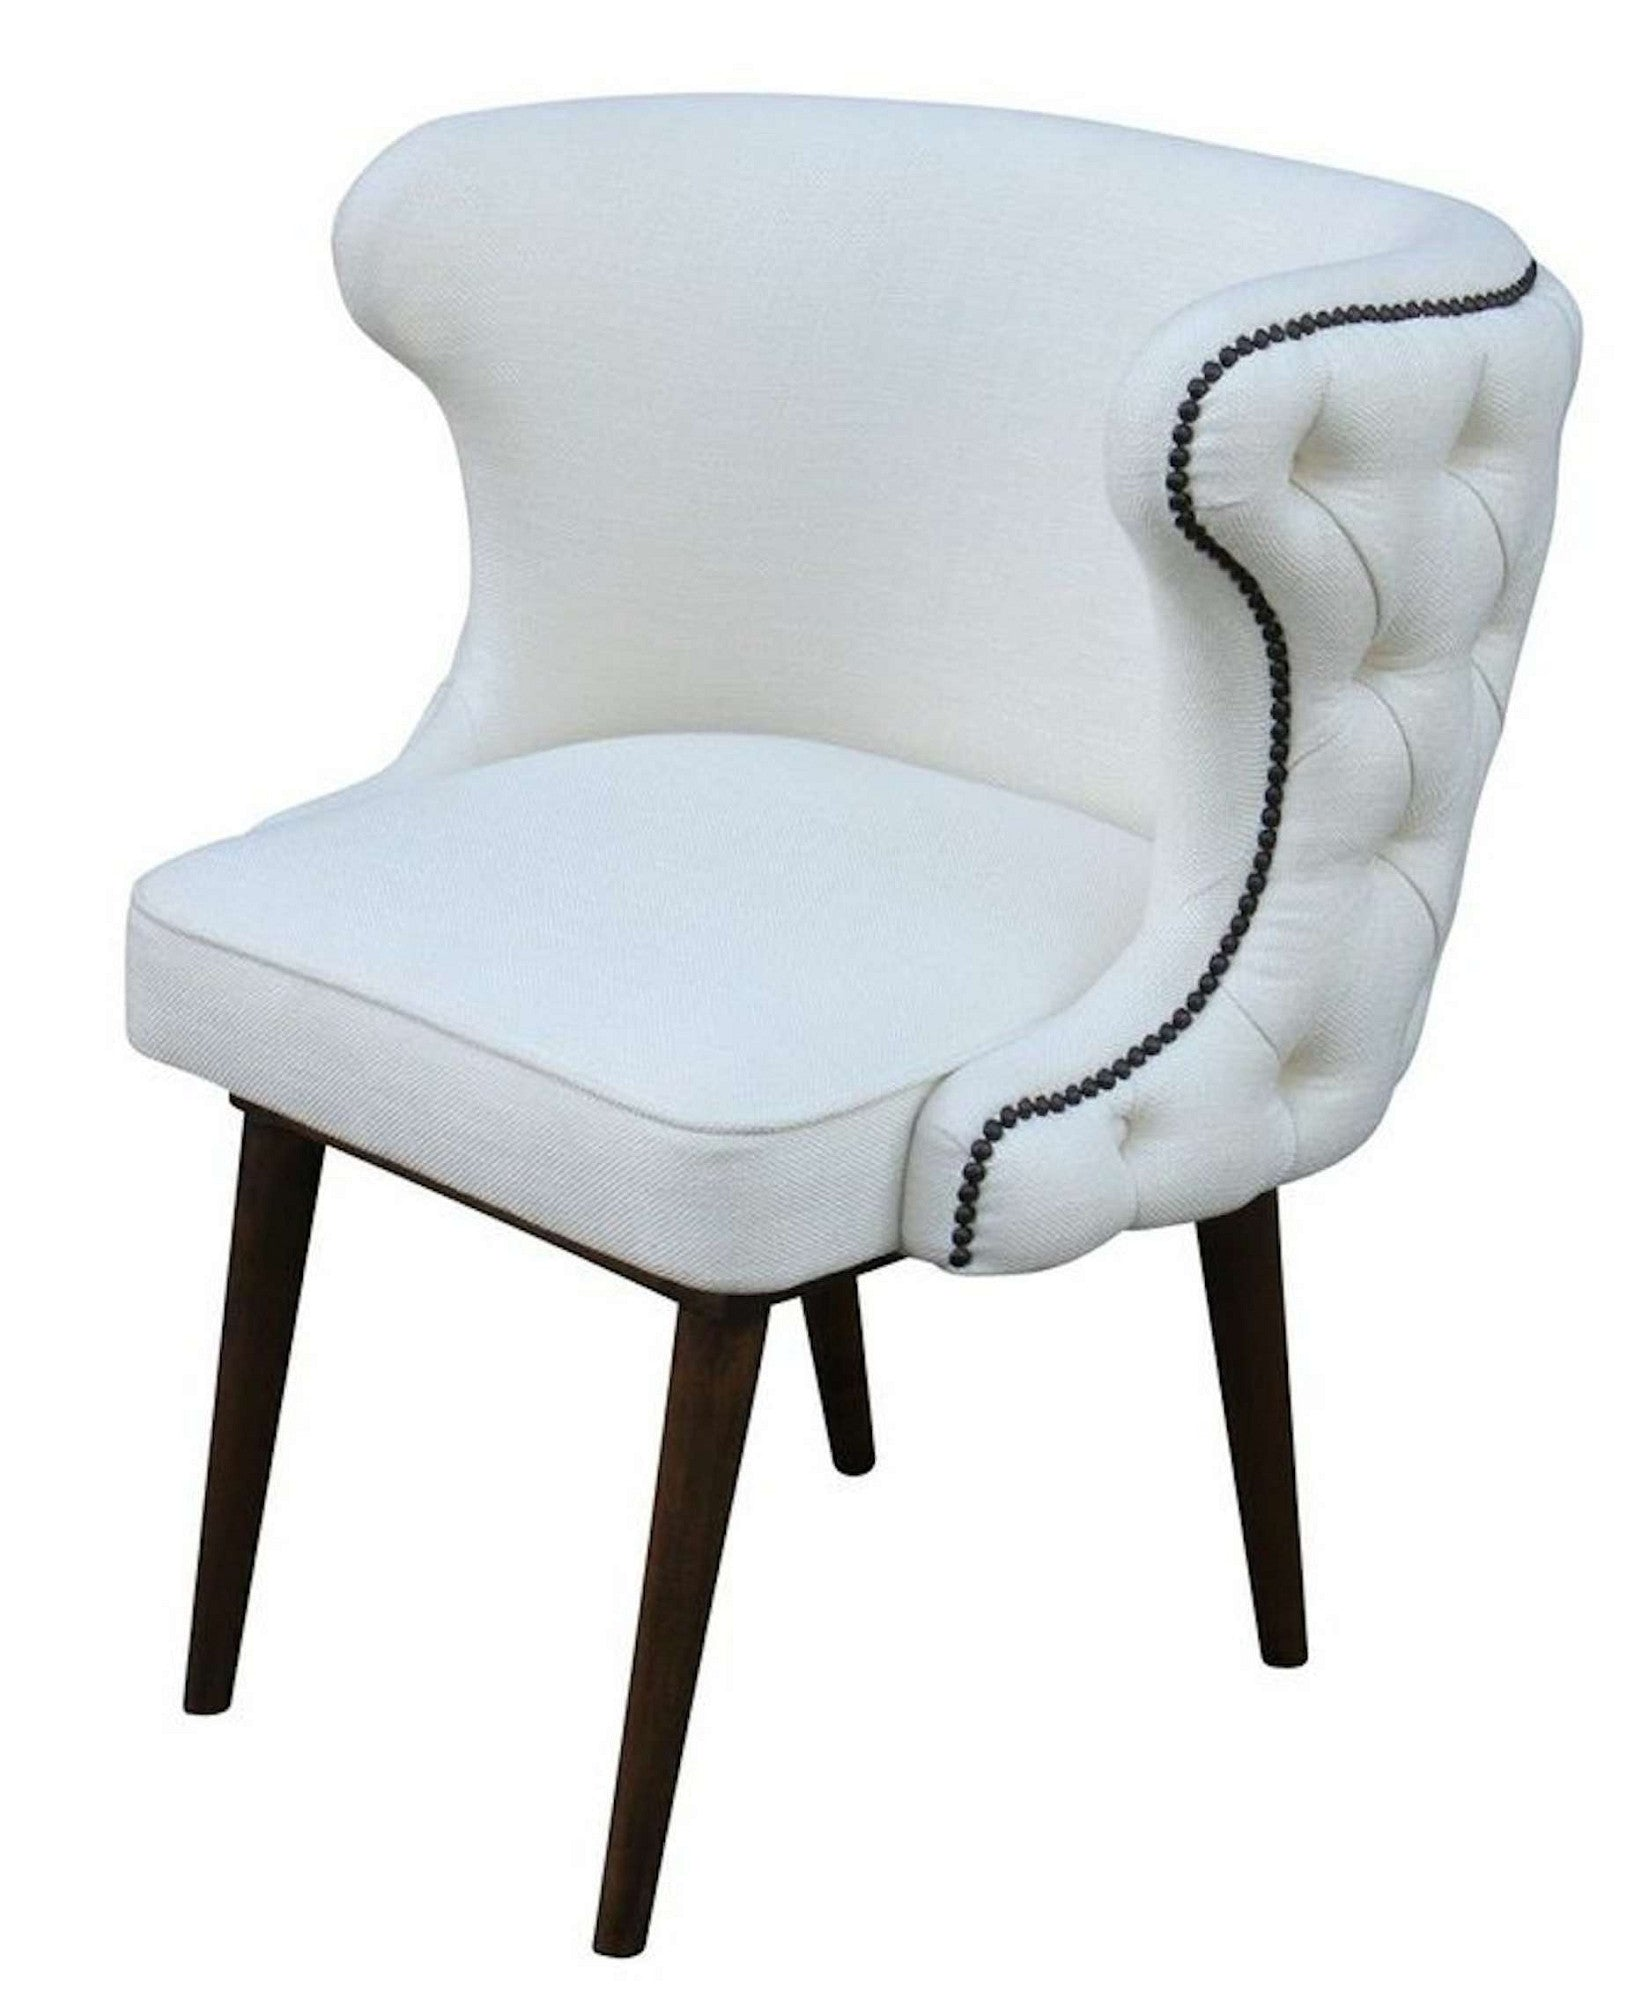 Upholstered Dining Room Chair: Mortise & Tenon